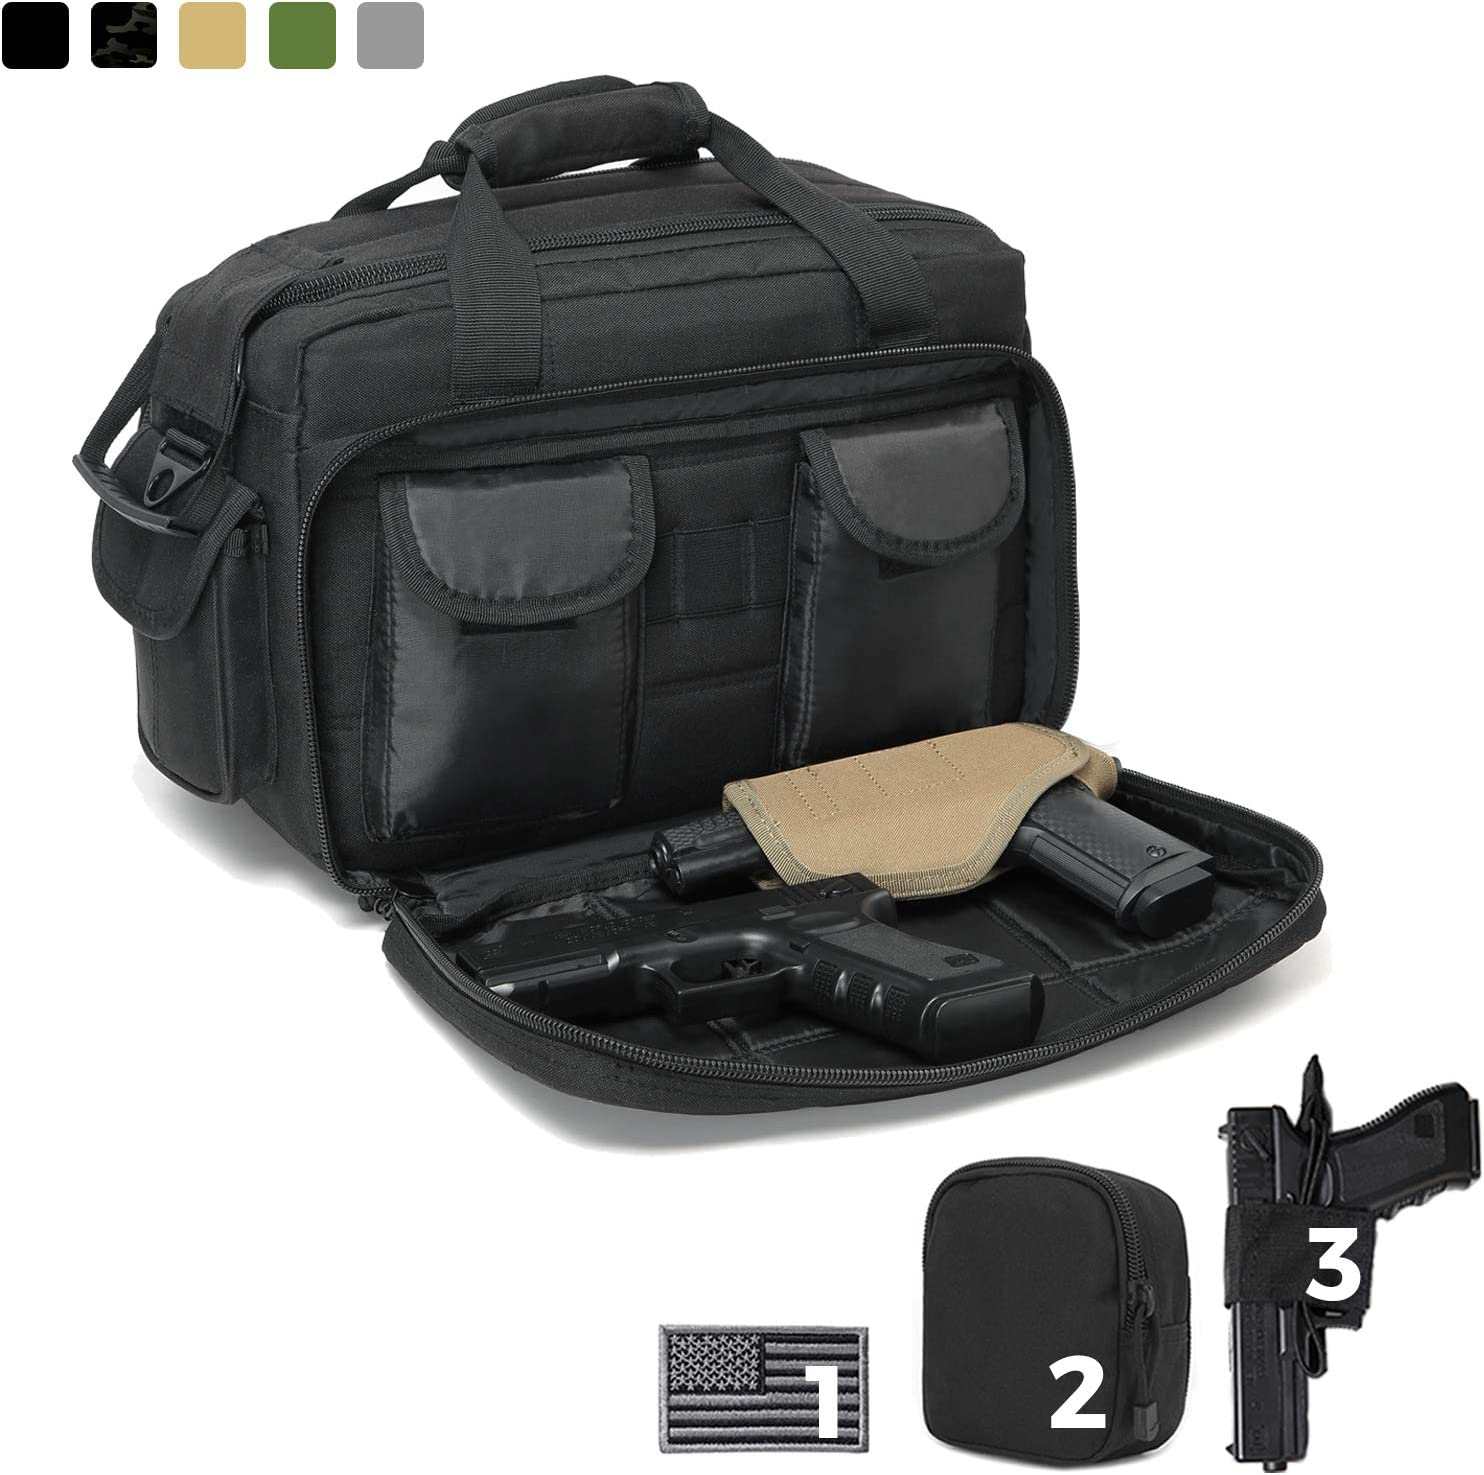 DBTAC Gun Range Bags Deluxe Middle Size | Tactical 2~4 Pistol Shooting Range Duffle Bag with Lockable Zipper for Handguns and Ammo